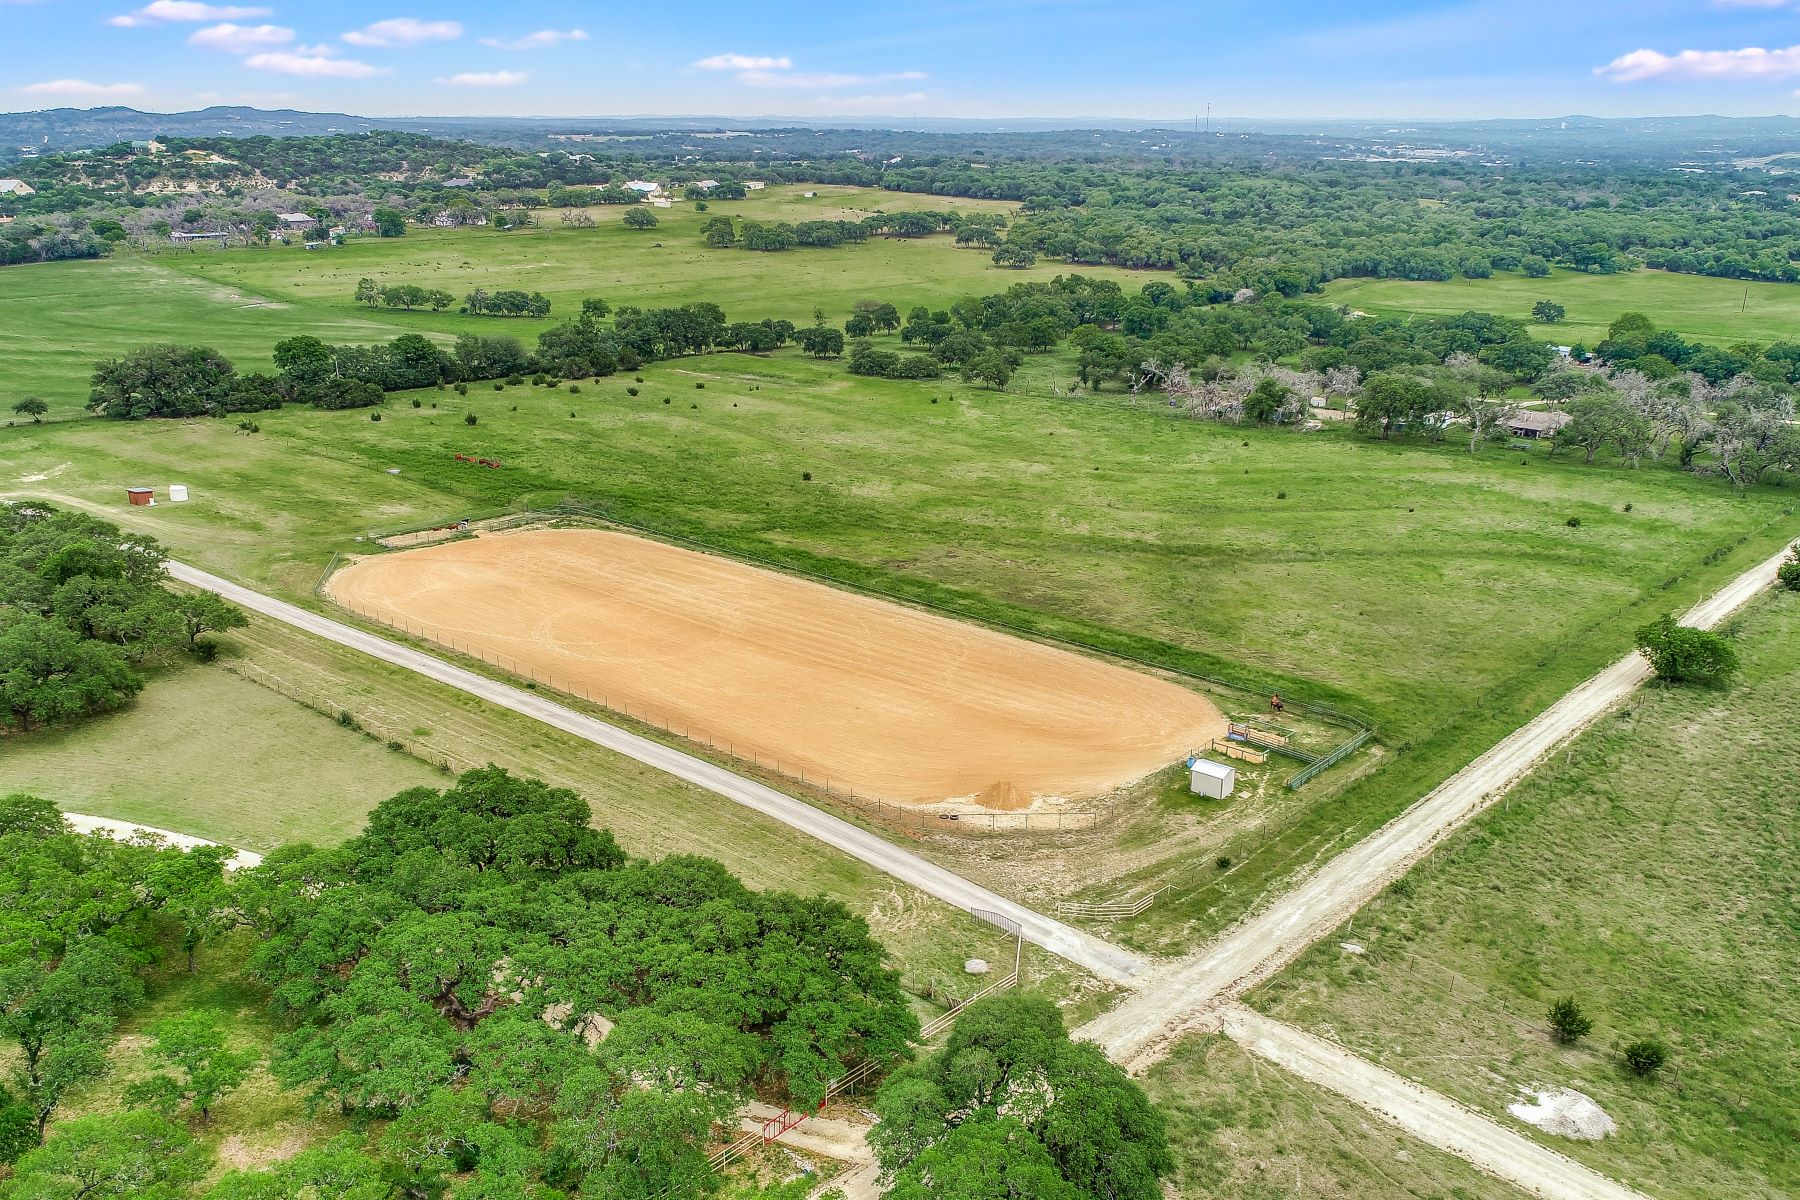 Farm / Ranch / Plantation for Sale at South Texas Style with Open Concept 113 Spanish Pass Road Boerne, Texas 78006 United States